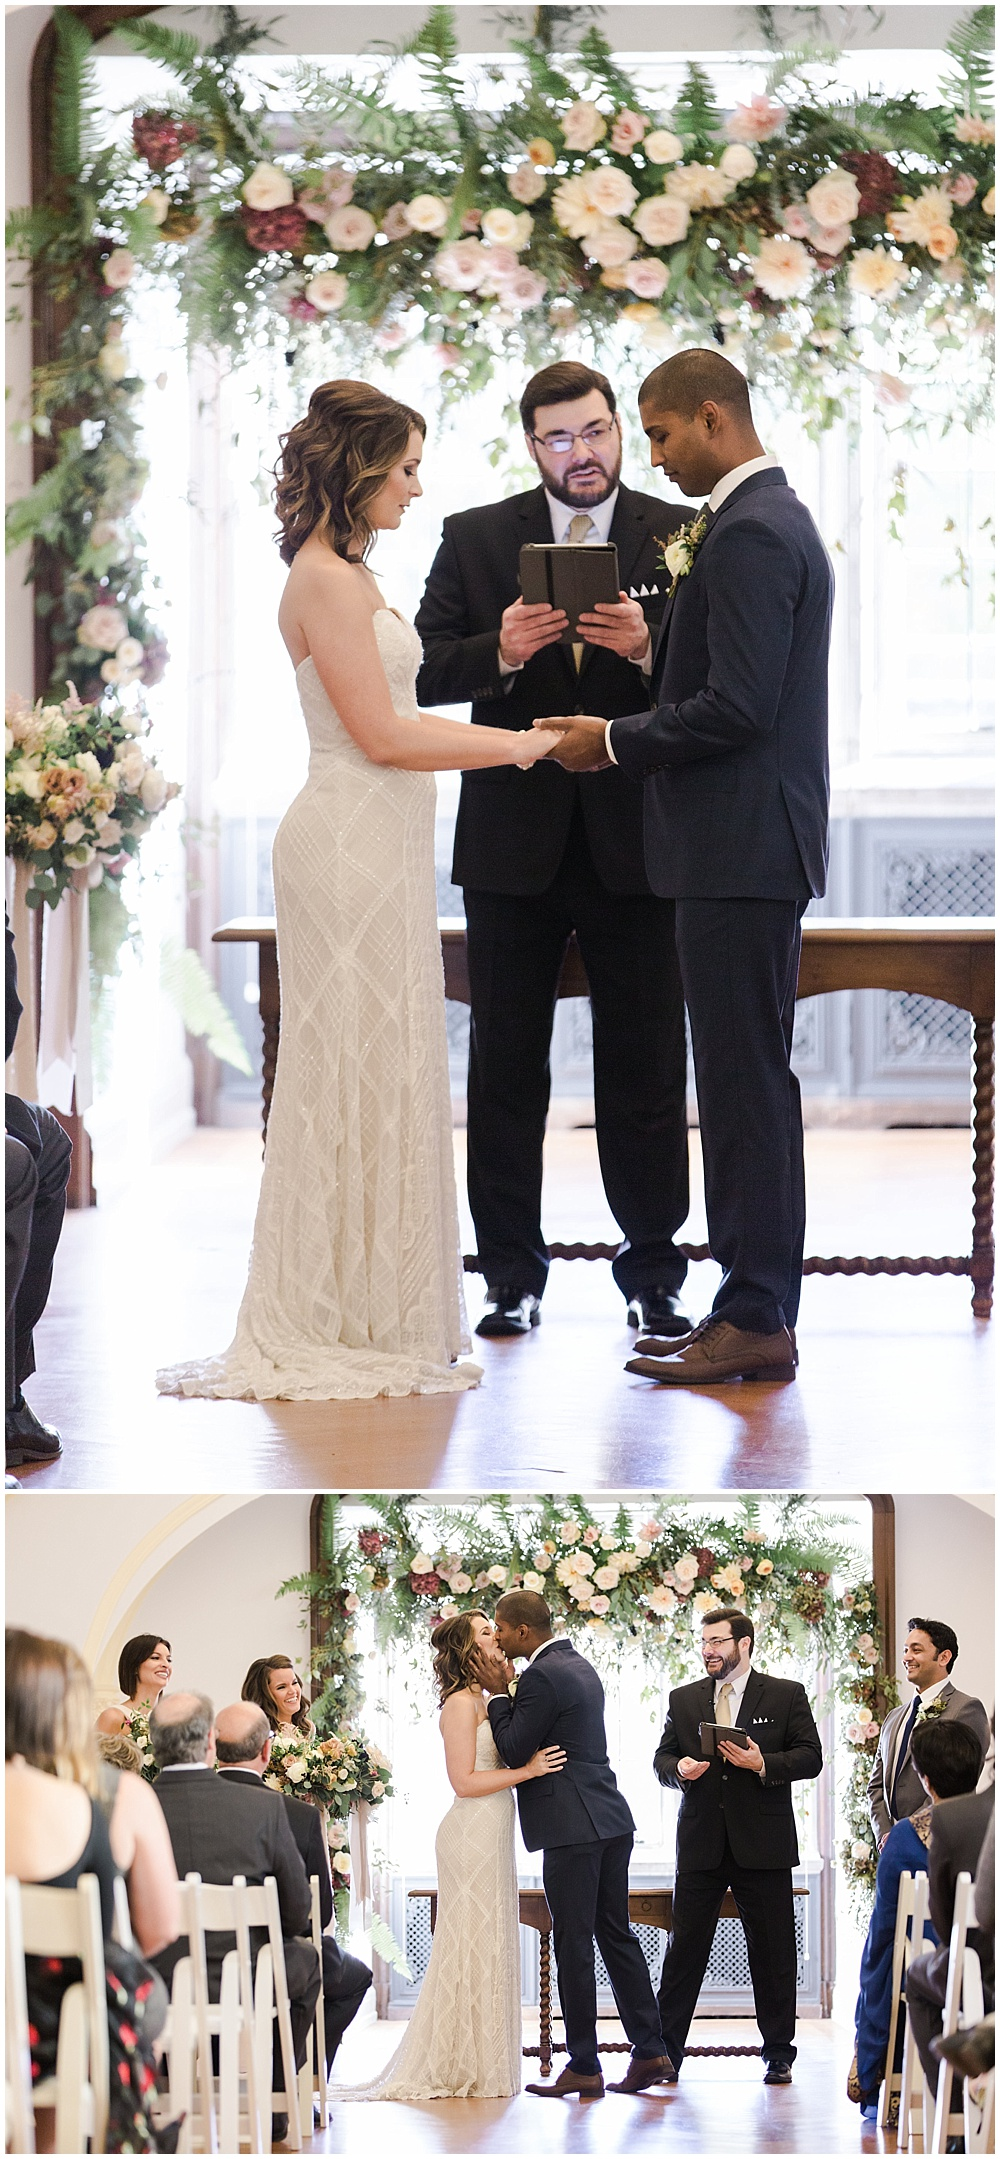 Floral arch for ceremony | Navy and Gold Wedding at Laurel Hall with Ivan & Louise Photography + Jessica Dum Wedding Coordination